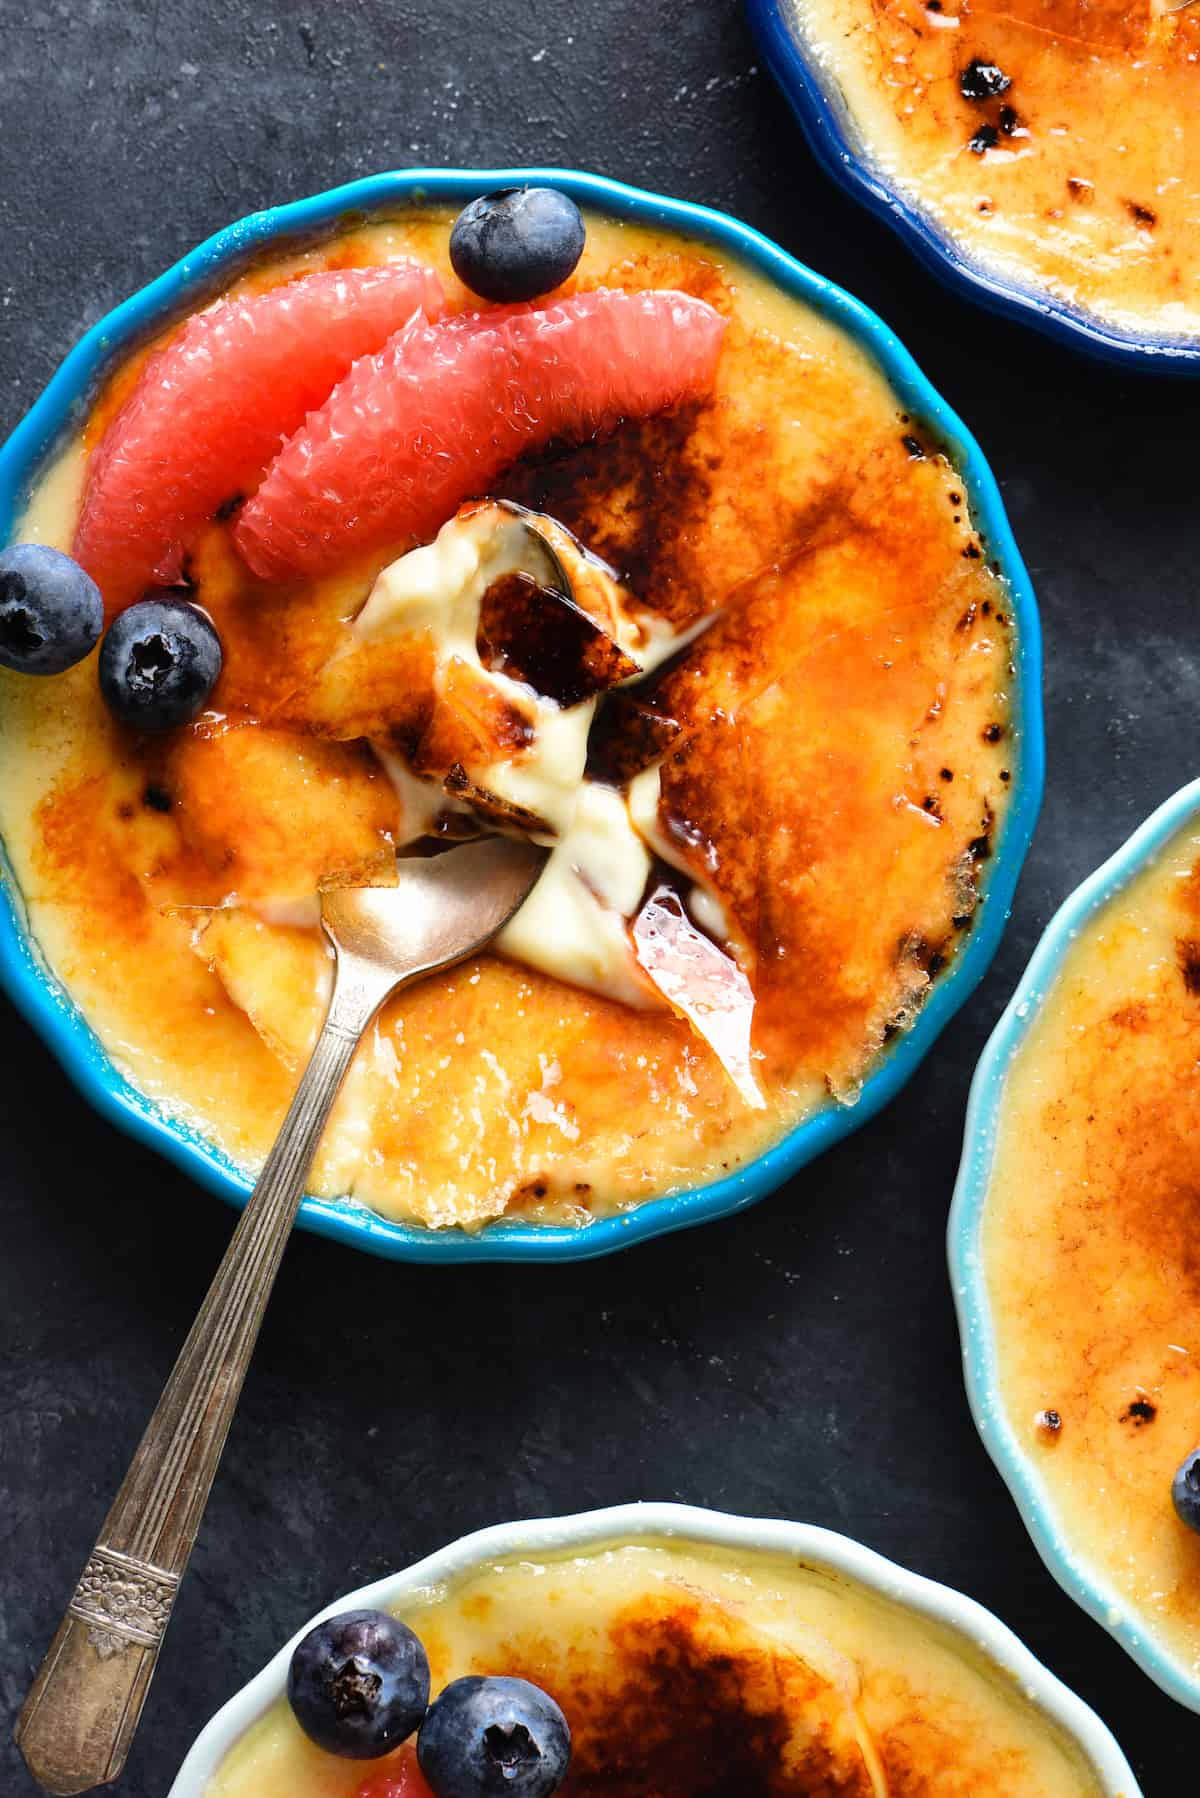 Preparing, torching and serving this Grapefruit Crème Brûlée is bound to make you feel like the kitchen superstar you are. Rich custard is flavored with sweet grapefruit juice and zest for a refreshing twist on a classic dessert. | foxeslovelemons.com